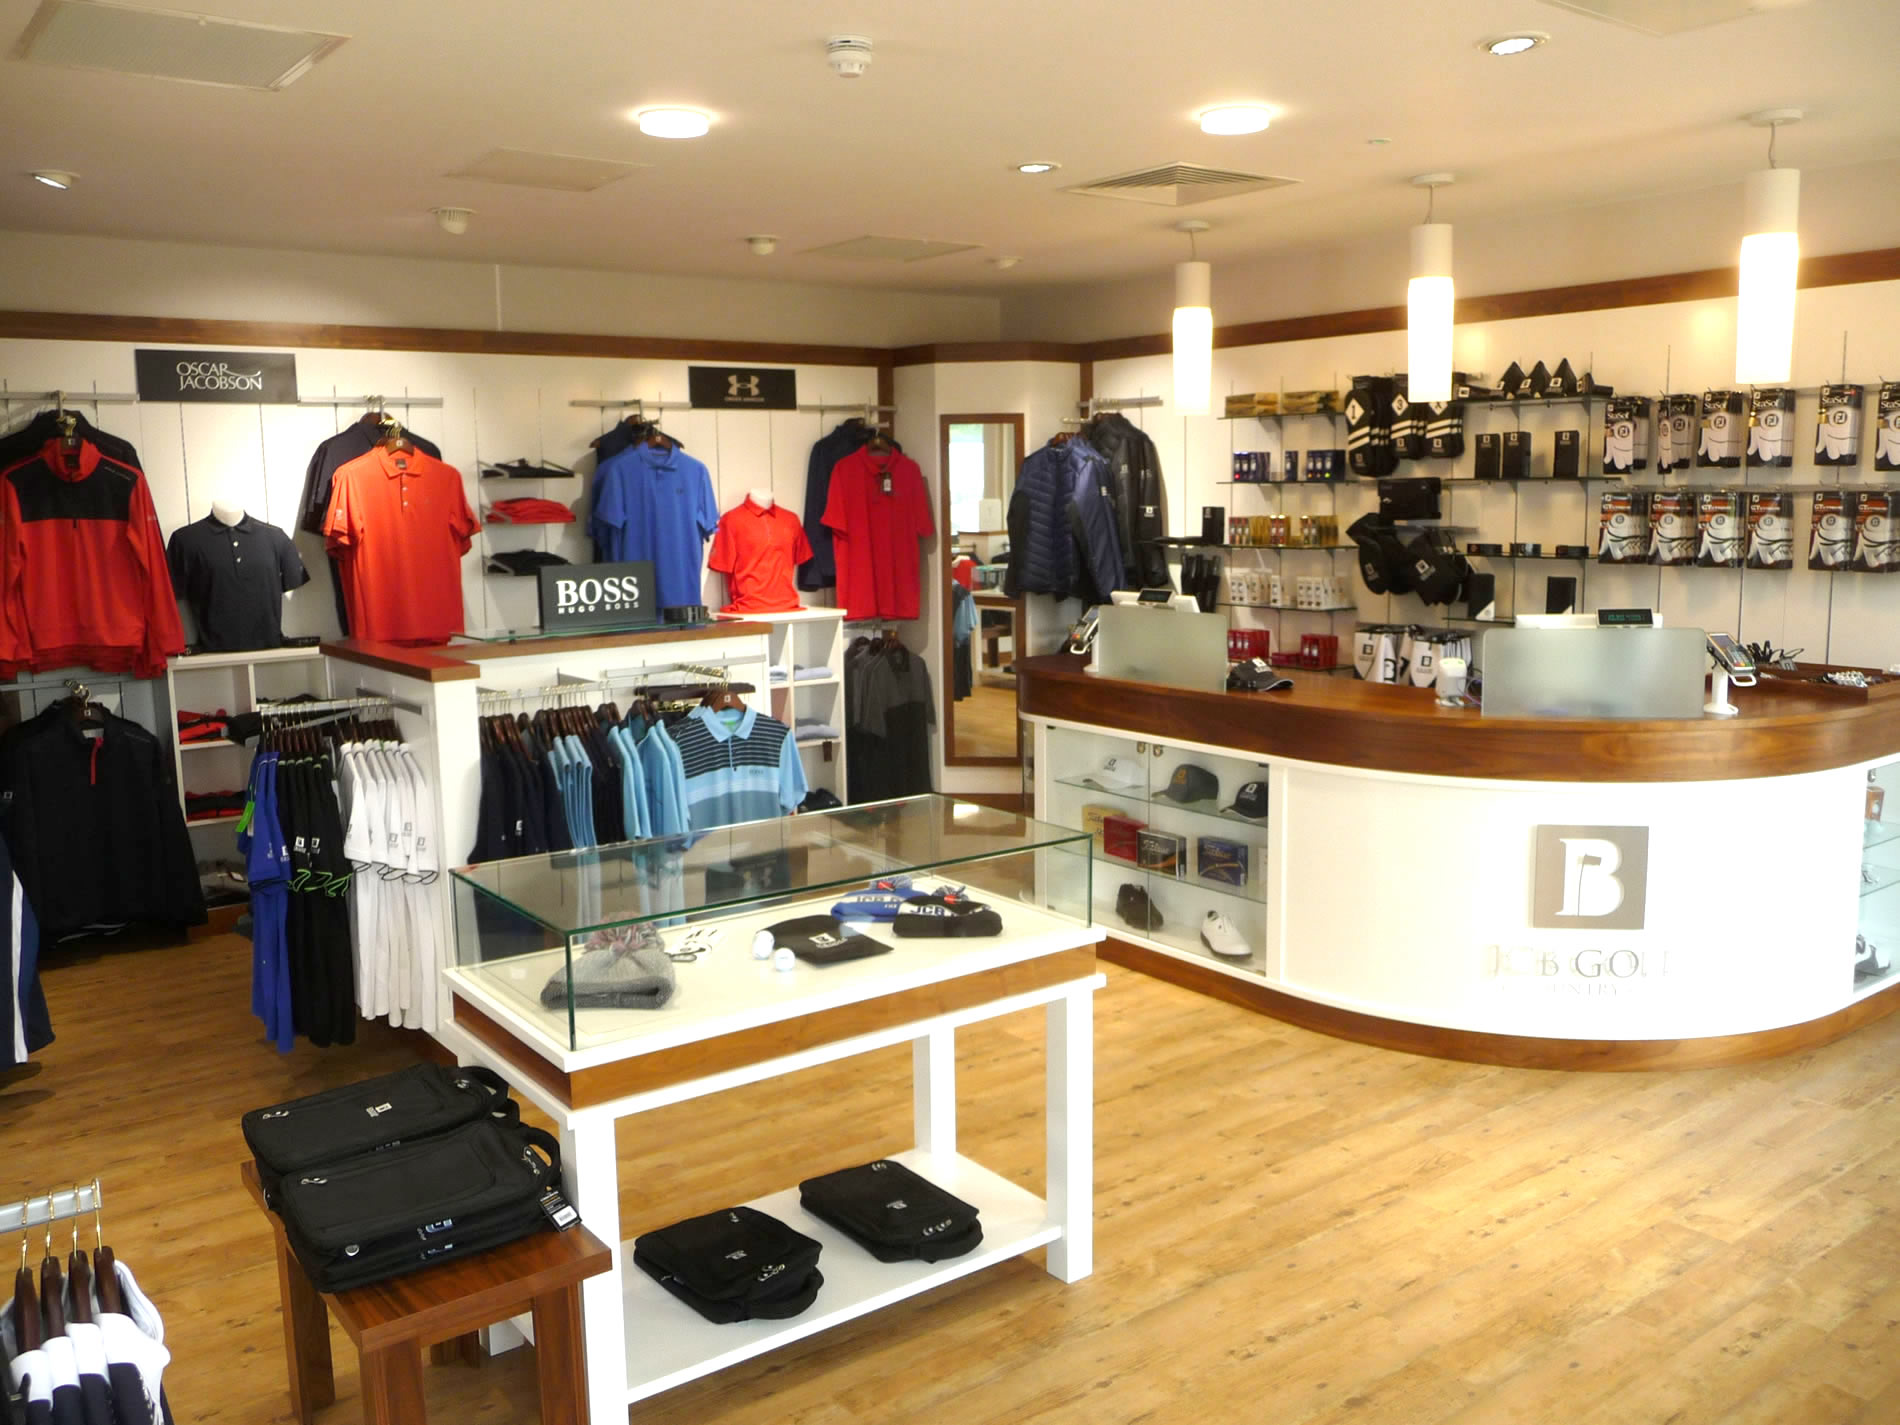 Bright, clean, contemporary shopfitting at JCB